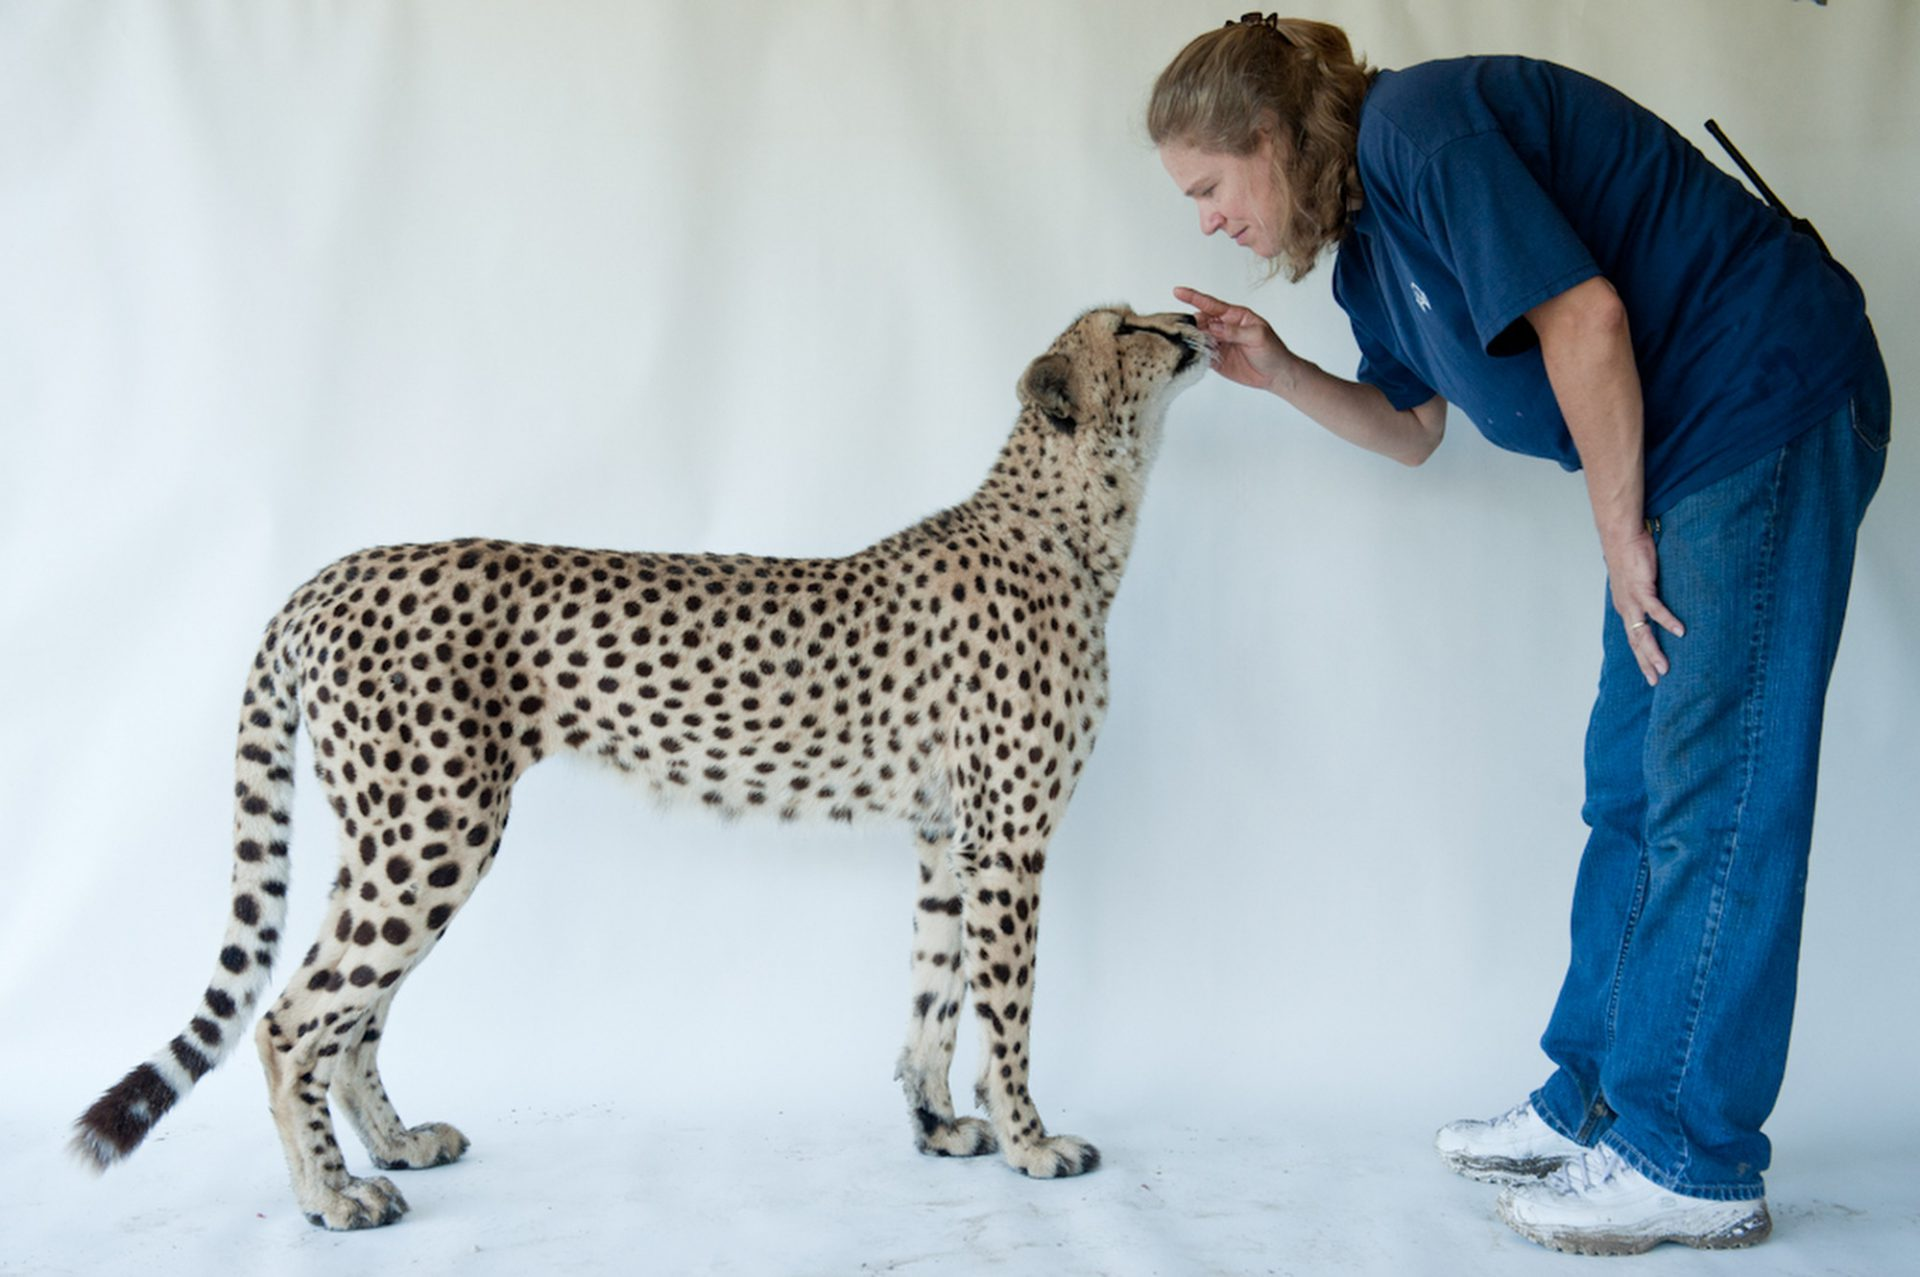 Photo: Hasari, a federally endangered three-year-old cheetah, with a trainer at White Oak Conservation Center.